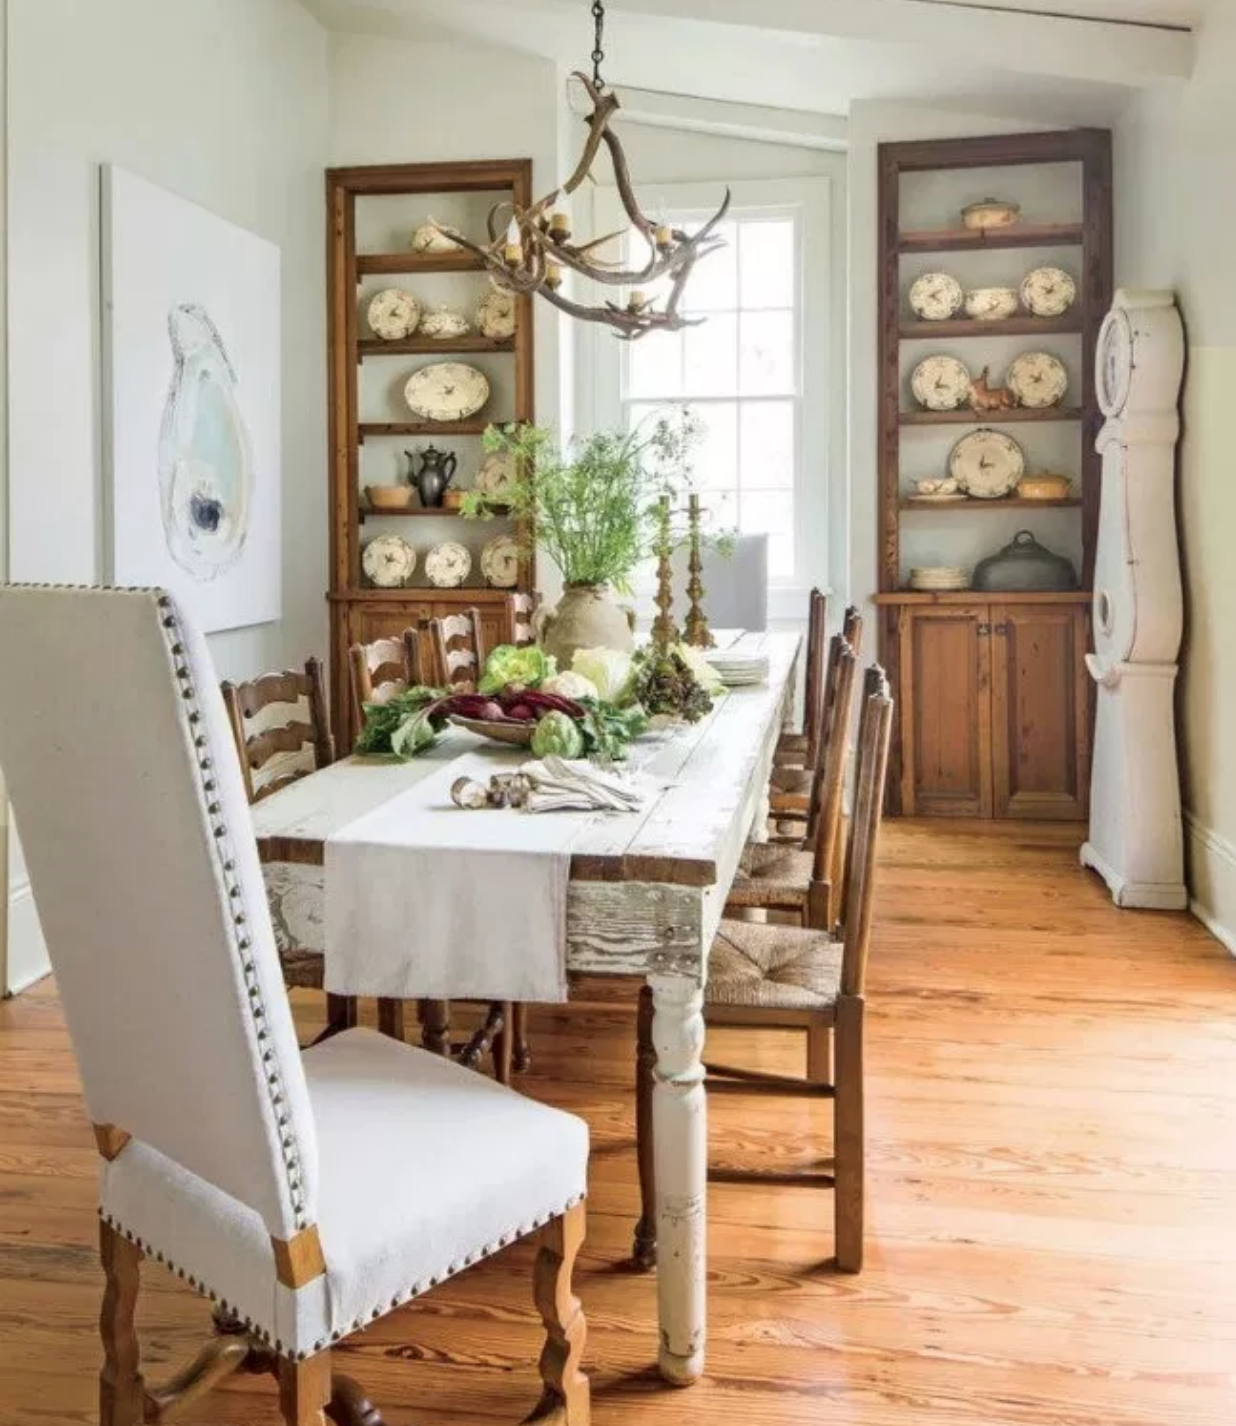 The 15 Most Beautiful Dining Rooms on Pinterest ... on Beautiful Room  id=60032